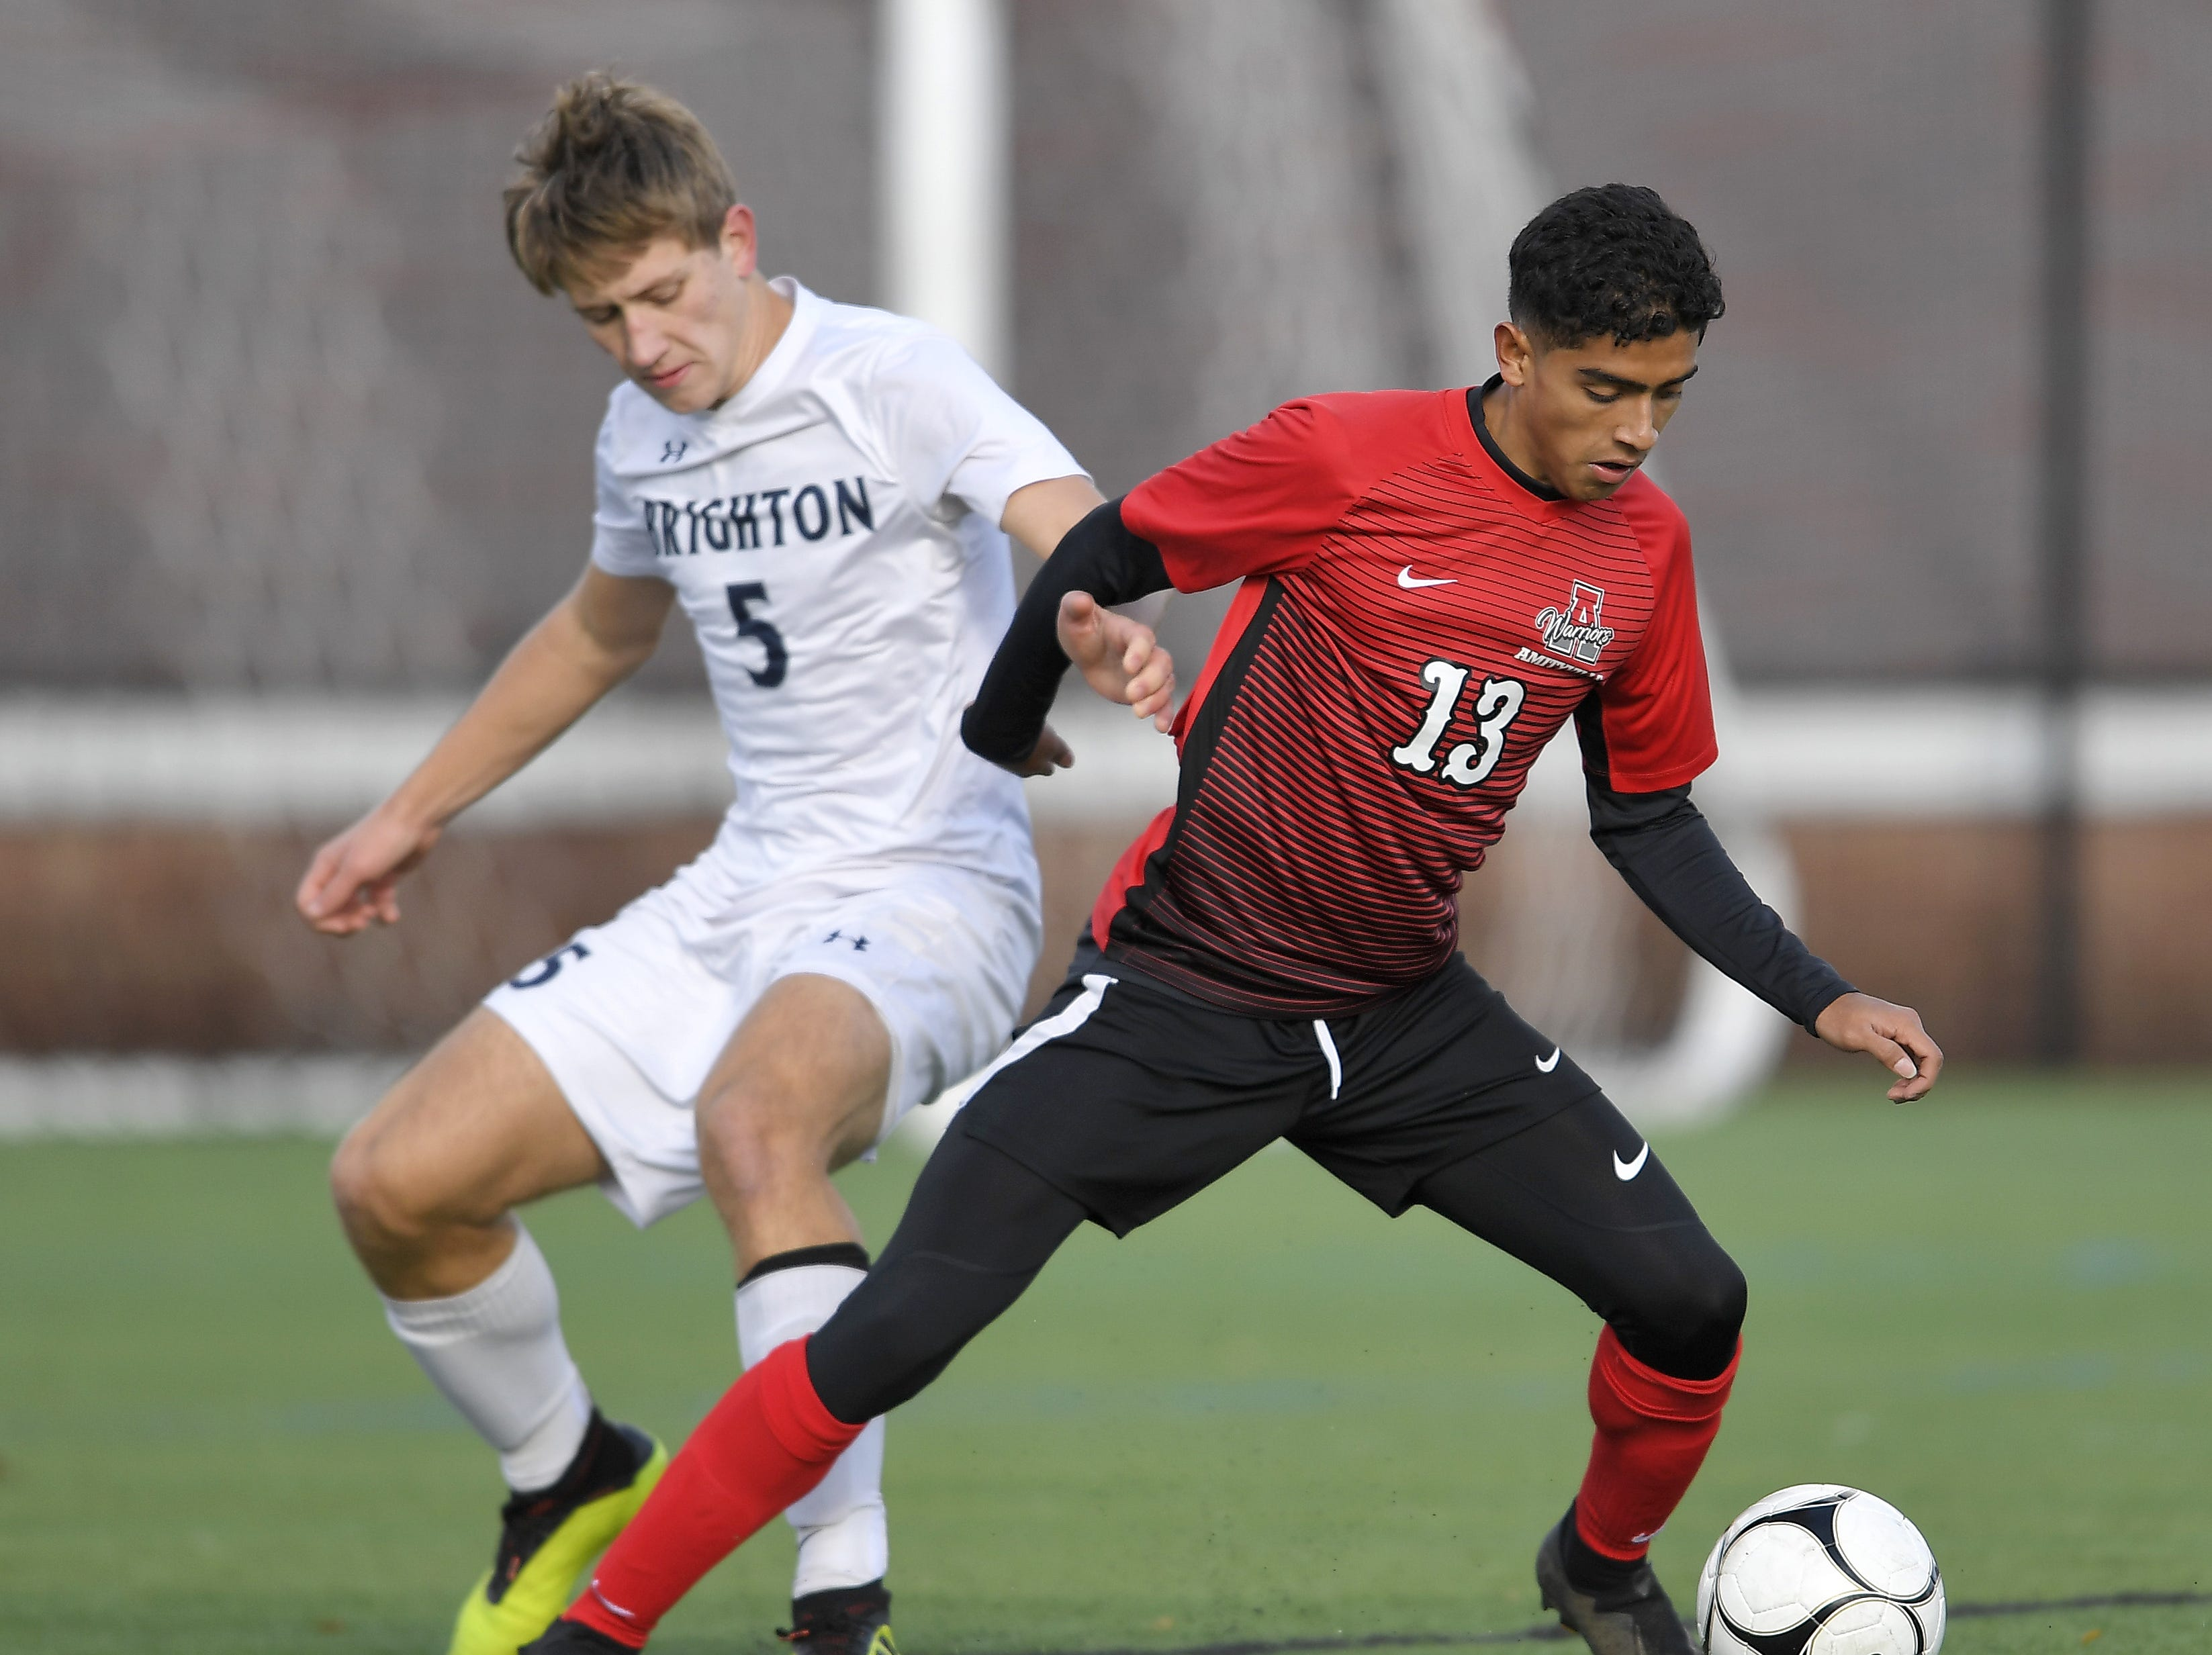 Brighton's Theo Viggiani-Cole, left, defends against Amityville's Rolman Guardado during a Class A semifinal at the NYSPHSAA Boys Soccer Championships in Newburgh, N.Y., Saturday, Nov. 10, 2018.